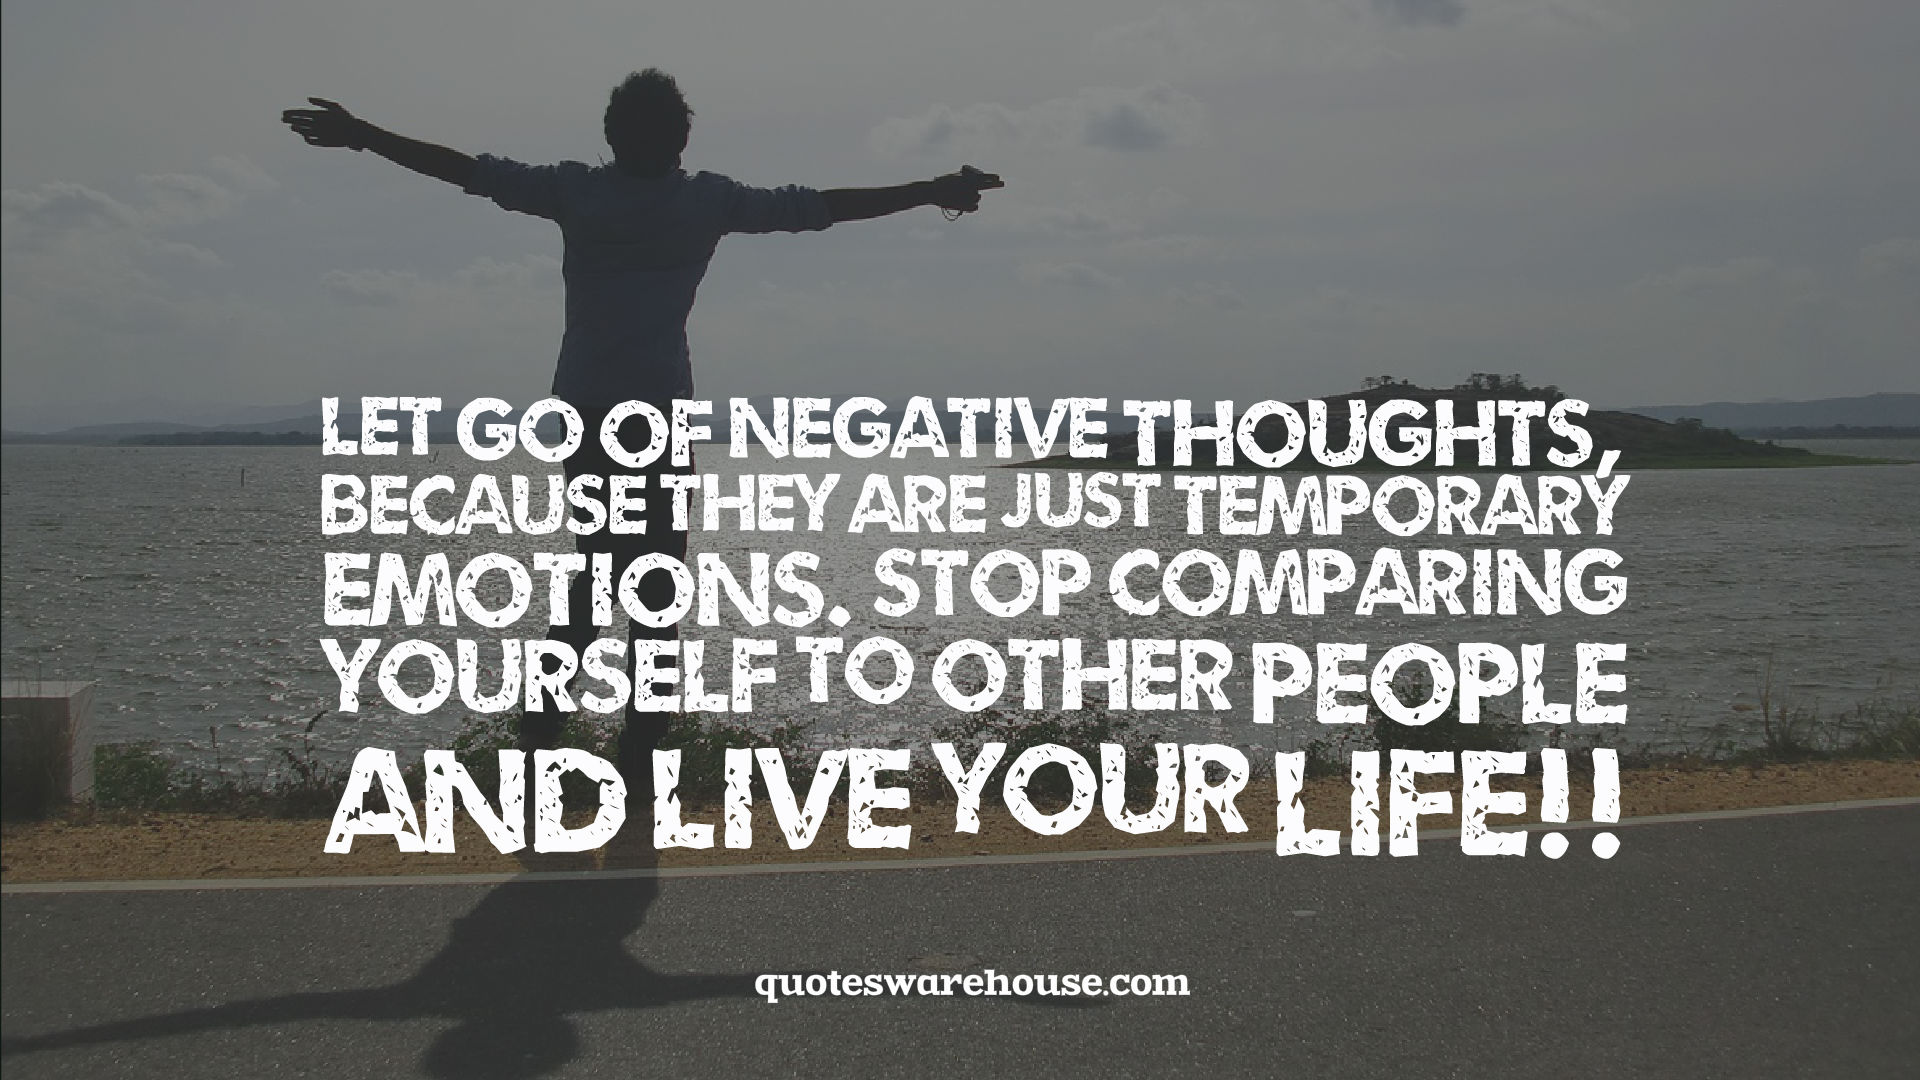 Best 3d Live Wallpaper Android 2015 Life Quote Wallpapers Pictures Images